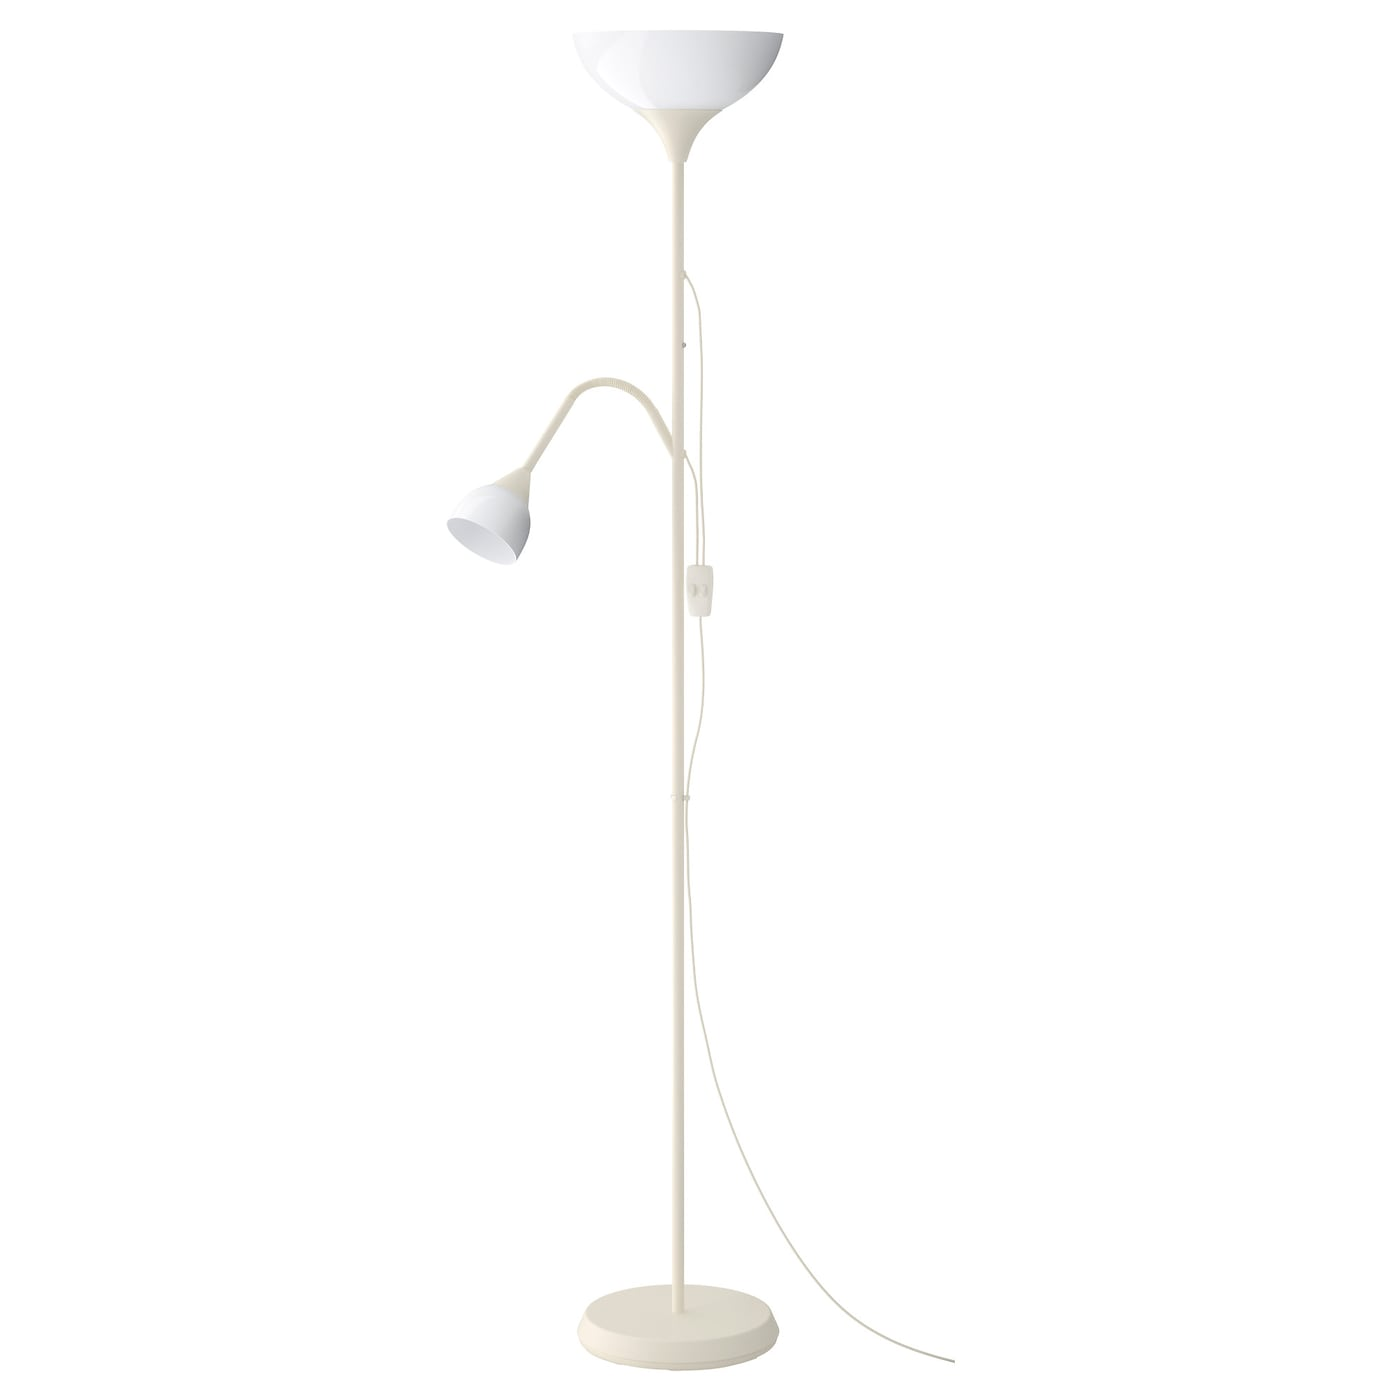 IKEA NOT staande lamp uplight/leeslamp